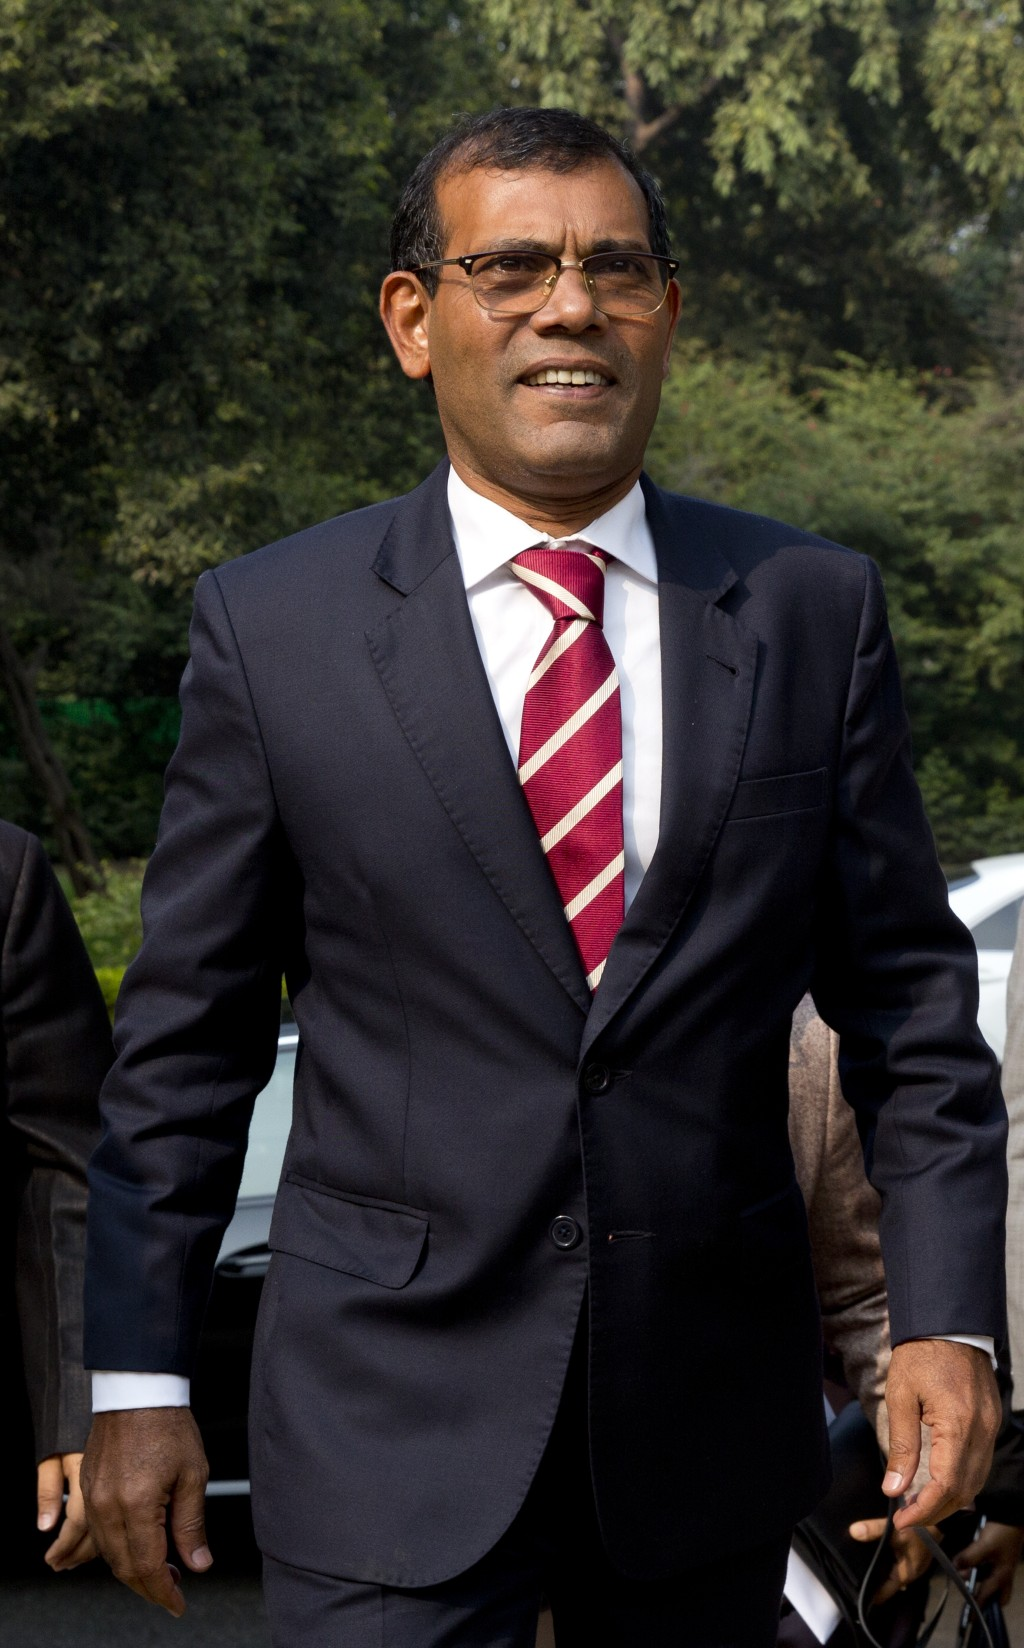 Former Maldives President Mohamed Nasheed arrives to deliver a lecture on climate change in New Delhi, India, Thursday, Feb. 14, 2019. In an interview